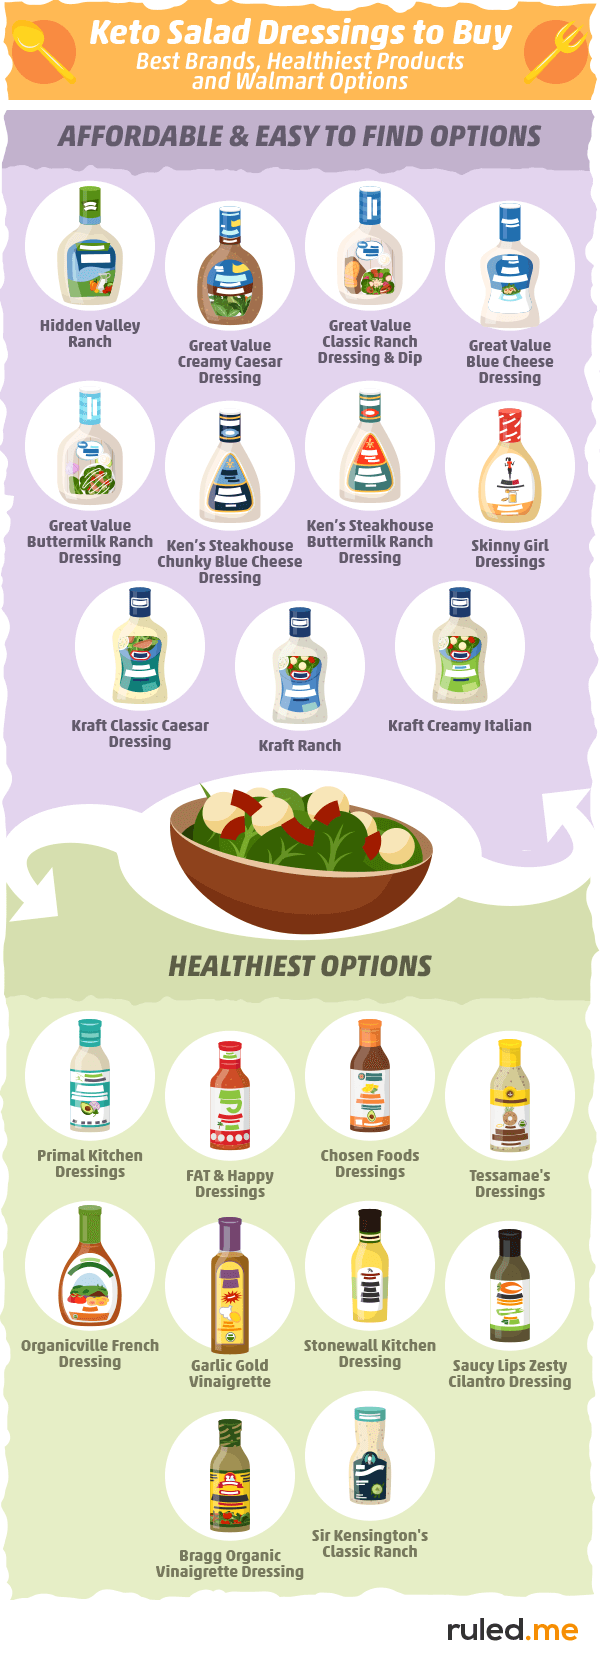 Keto Salad Dressings to Buy: Best Brands, Healthiest Products, and Walmart Options